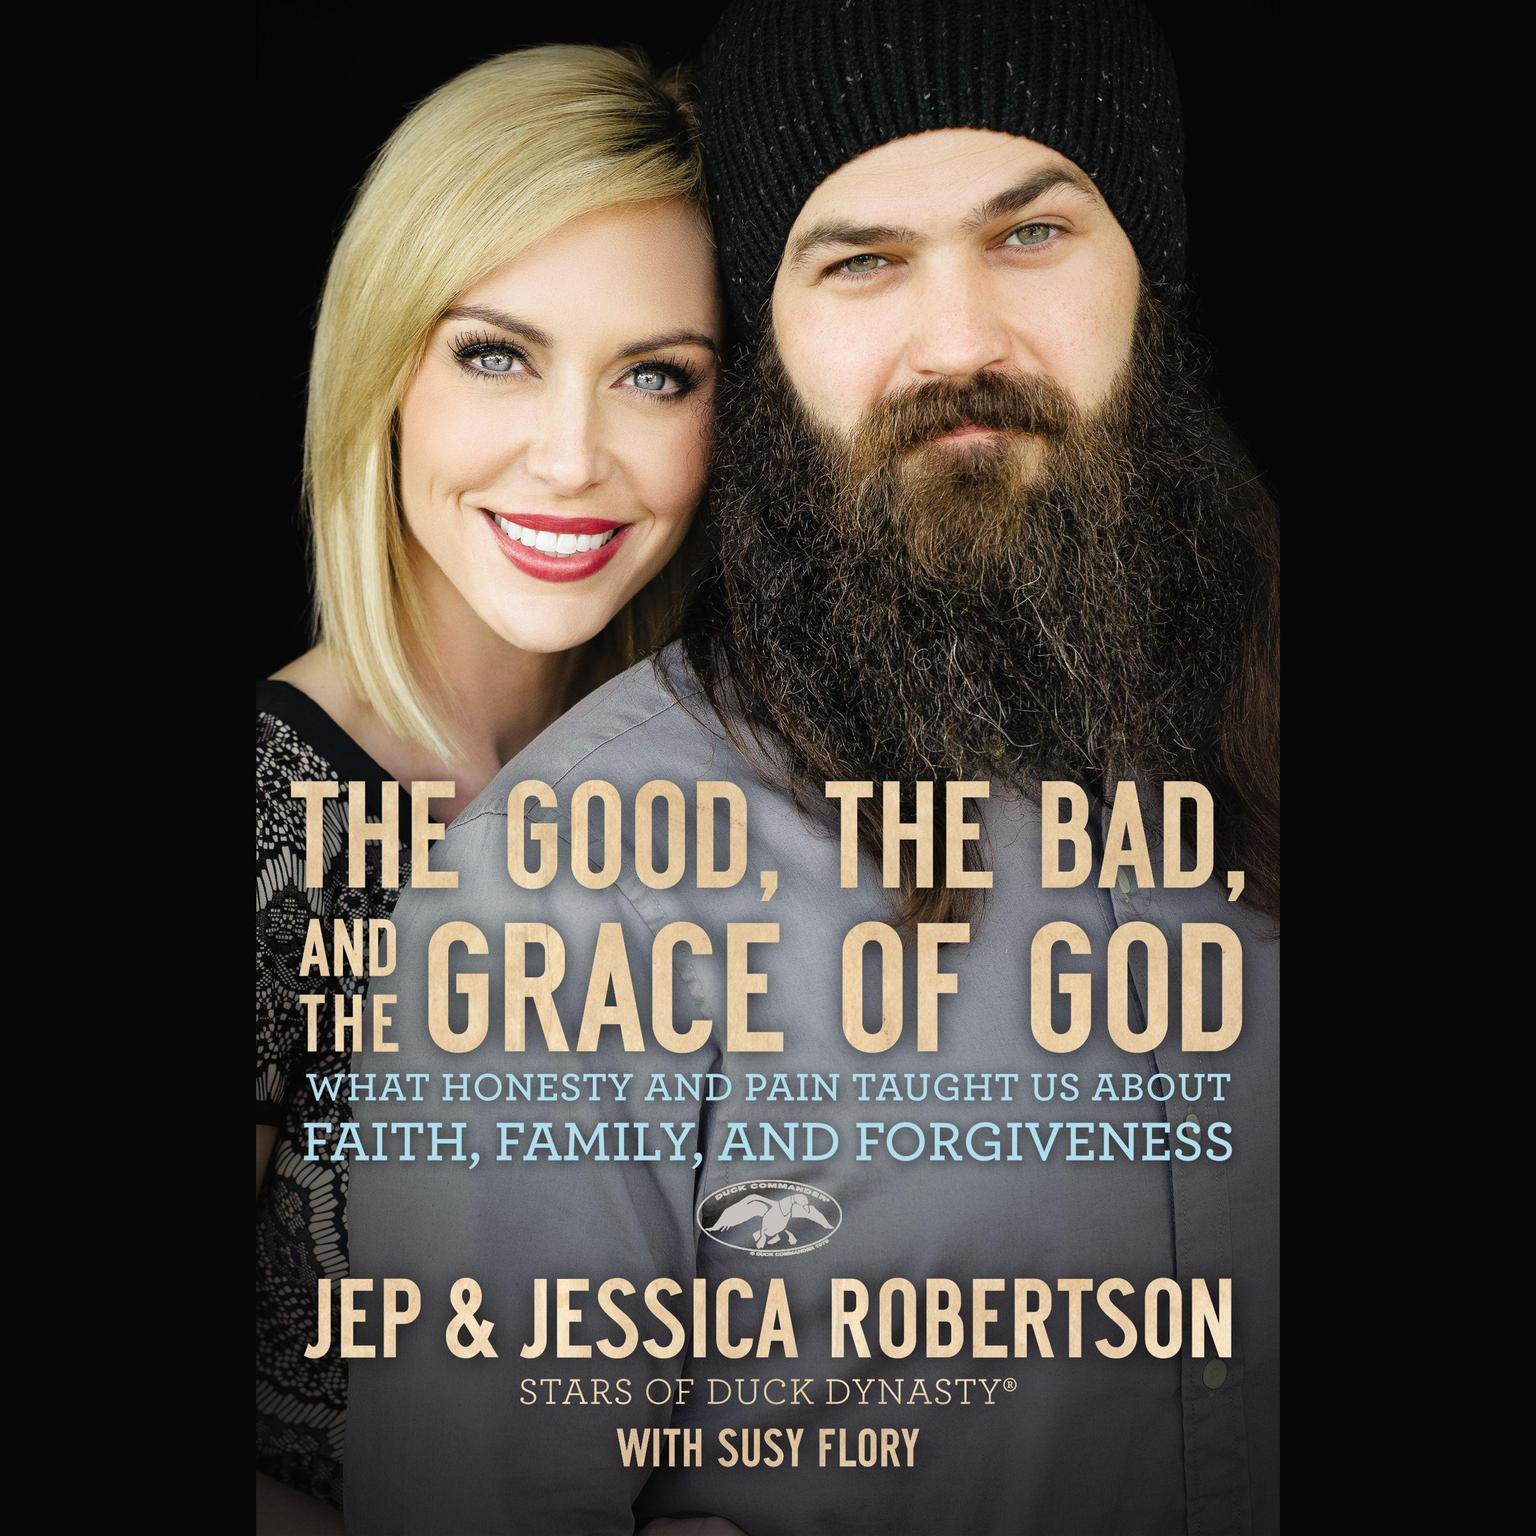 Printable The Good, The Bad, and the Grace of God: What Honesty and Pain Taught Us About Faith, Family, and Forgiveness Audiobook Cover Art